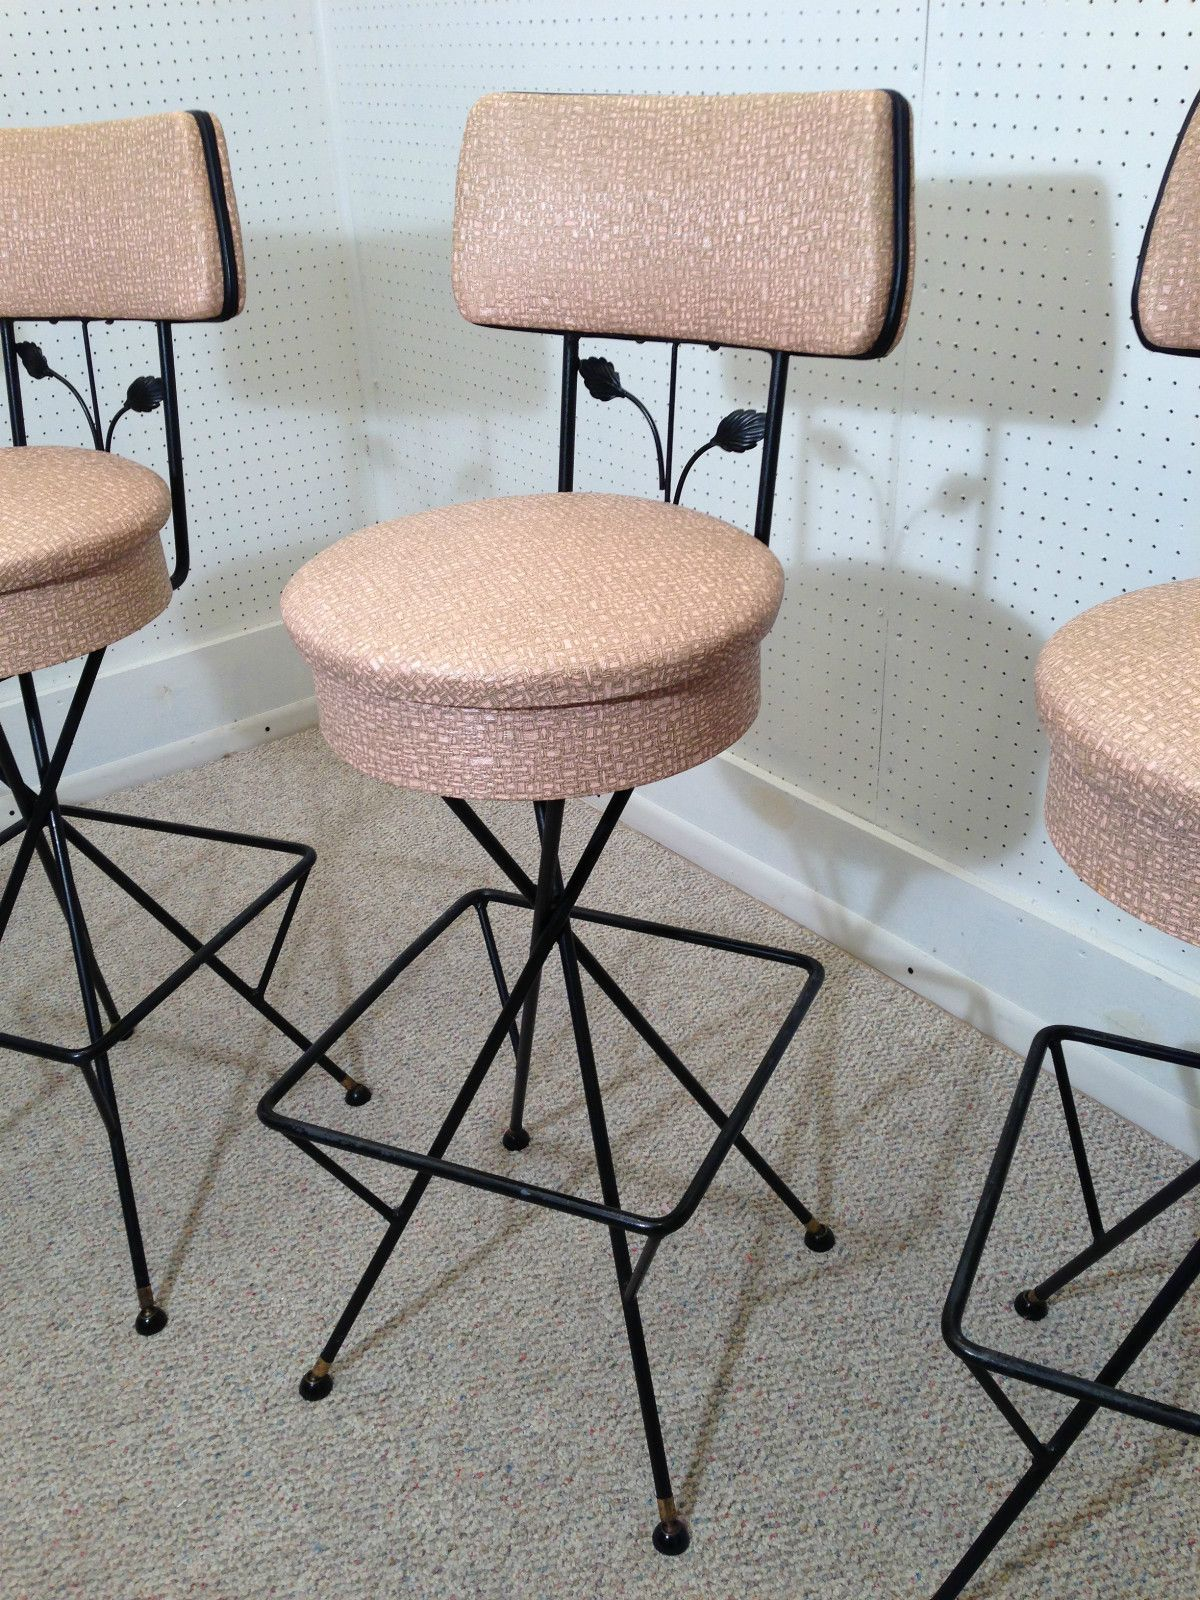 rainbow dream bar stool rainbow dream fantasy stool barstool home decor stools Retro Home Decor. 50s Atomic Ranch Retro Bar Stools - Pink Mid Century  Modern Weinberg Eames